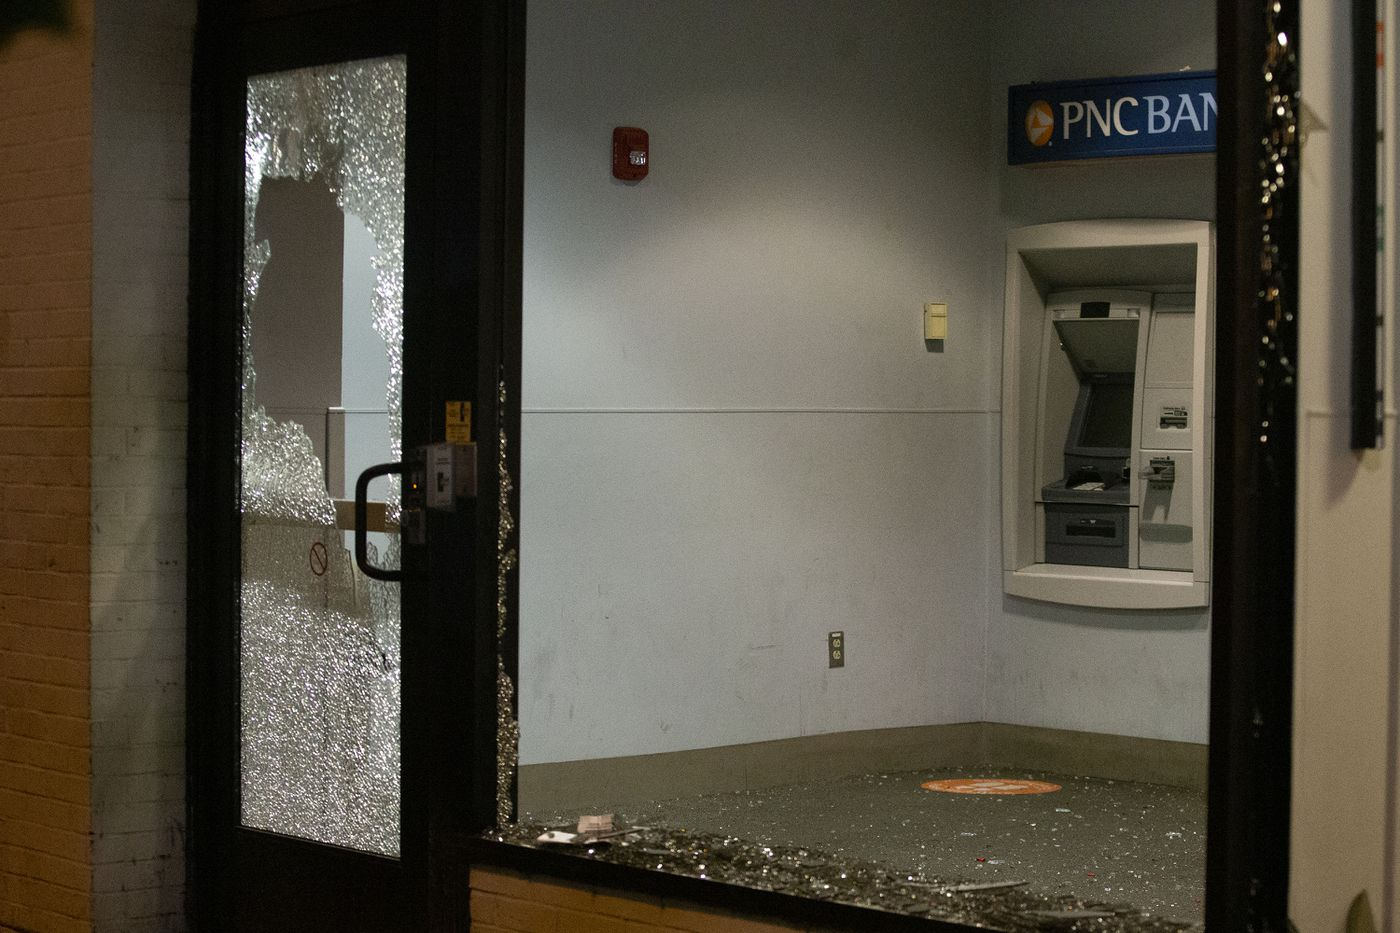 The shattered windows at a PNC Bank branch on 40th Street near Walnut. The windows were destroyed by a group of protesters marching in response to the Jacob Blake shooting in Wisconsin.